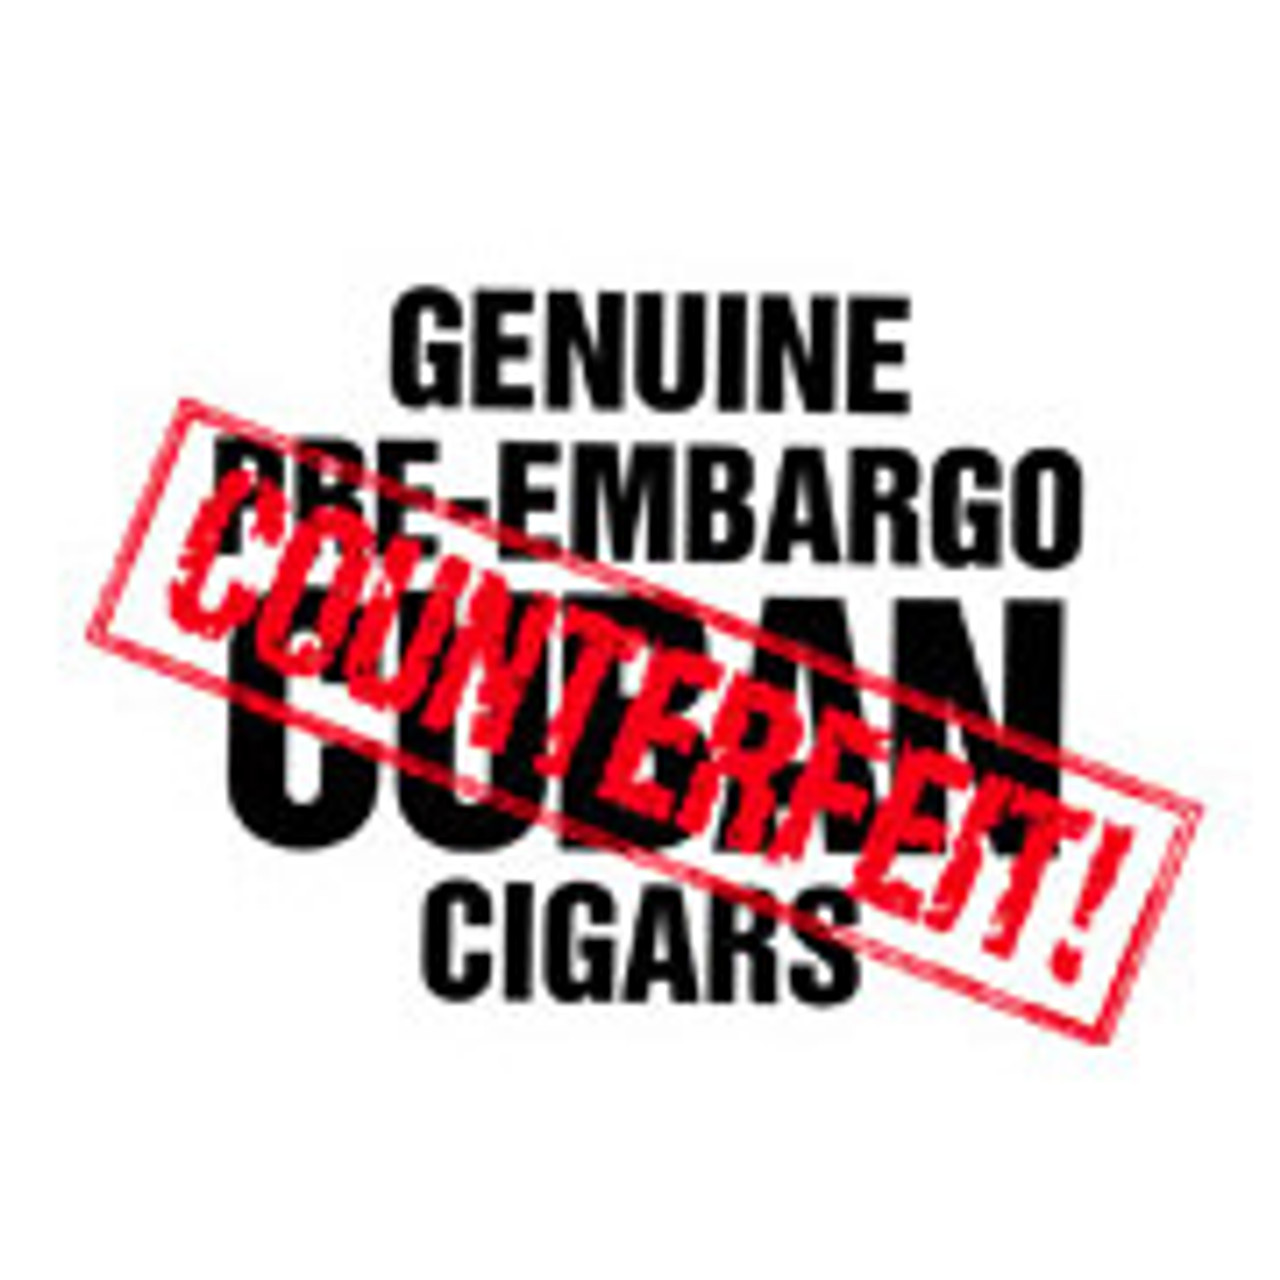 Genuine Pre-Embargo C.C. Sun Grown 1958 Epicure Cigars - 5 x 50 (Pack of 5)